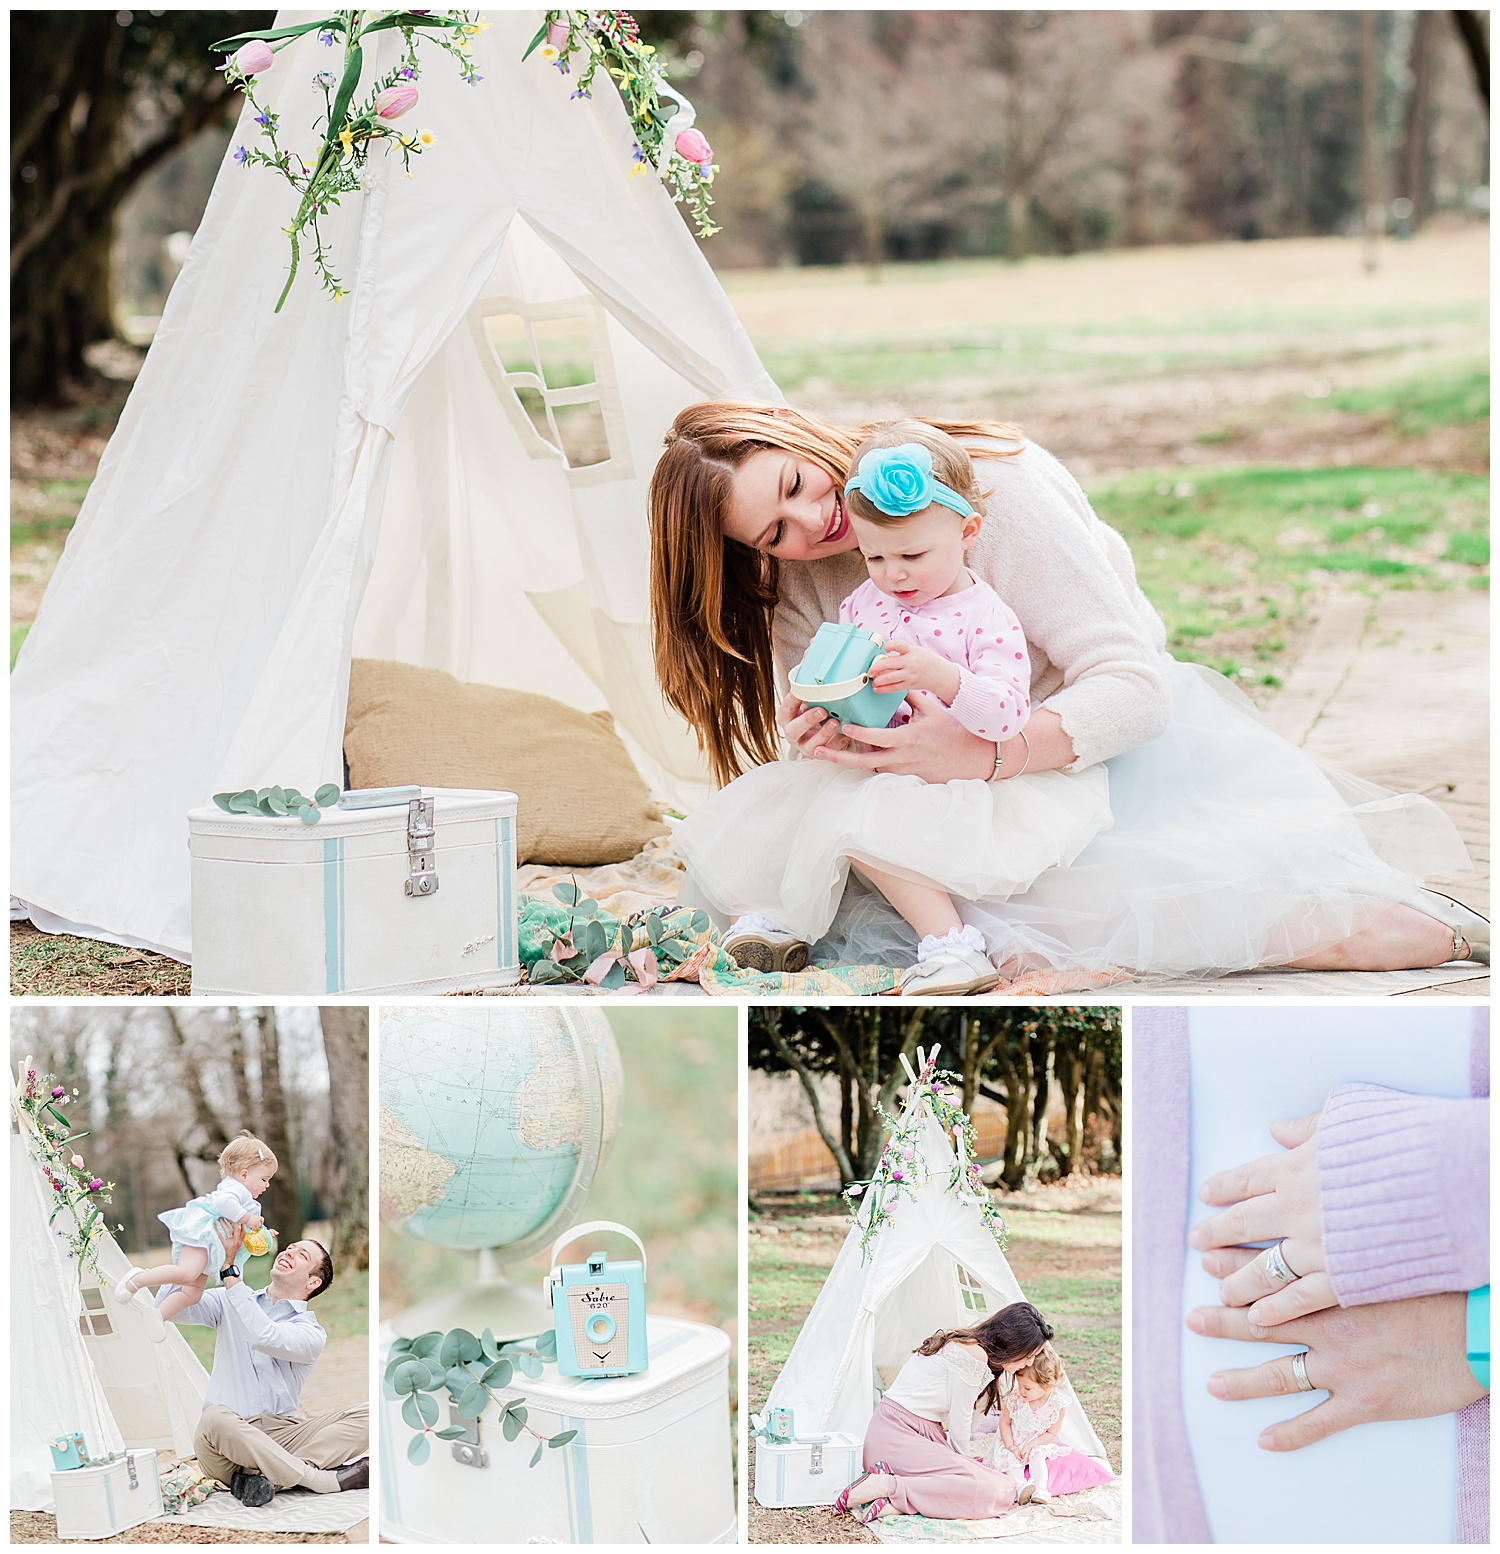 Richmond Virginia Family Photographer - Byrd Park Family Portraits - Bohemian Styled Shoot